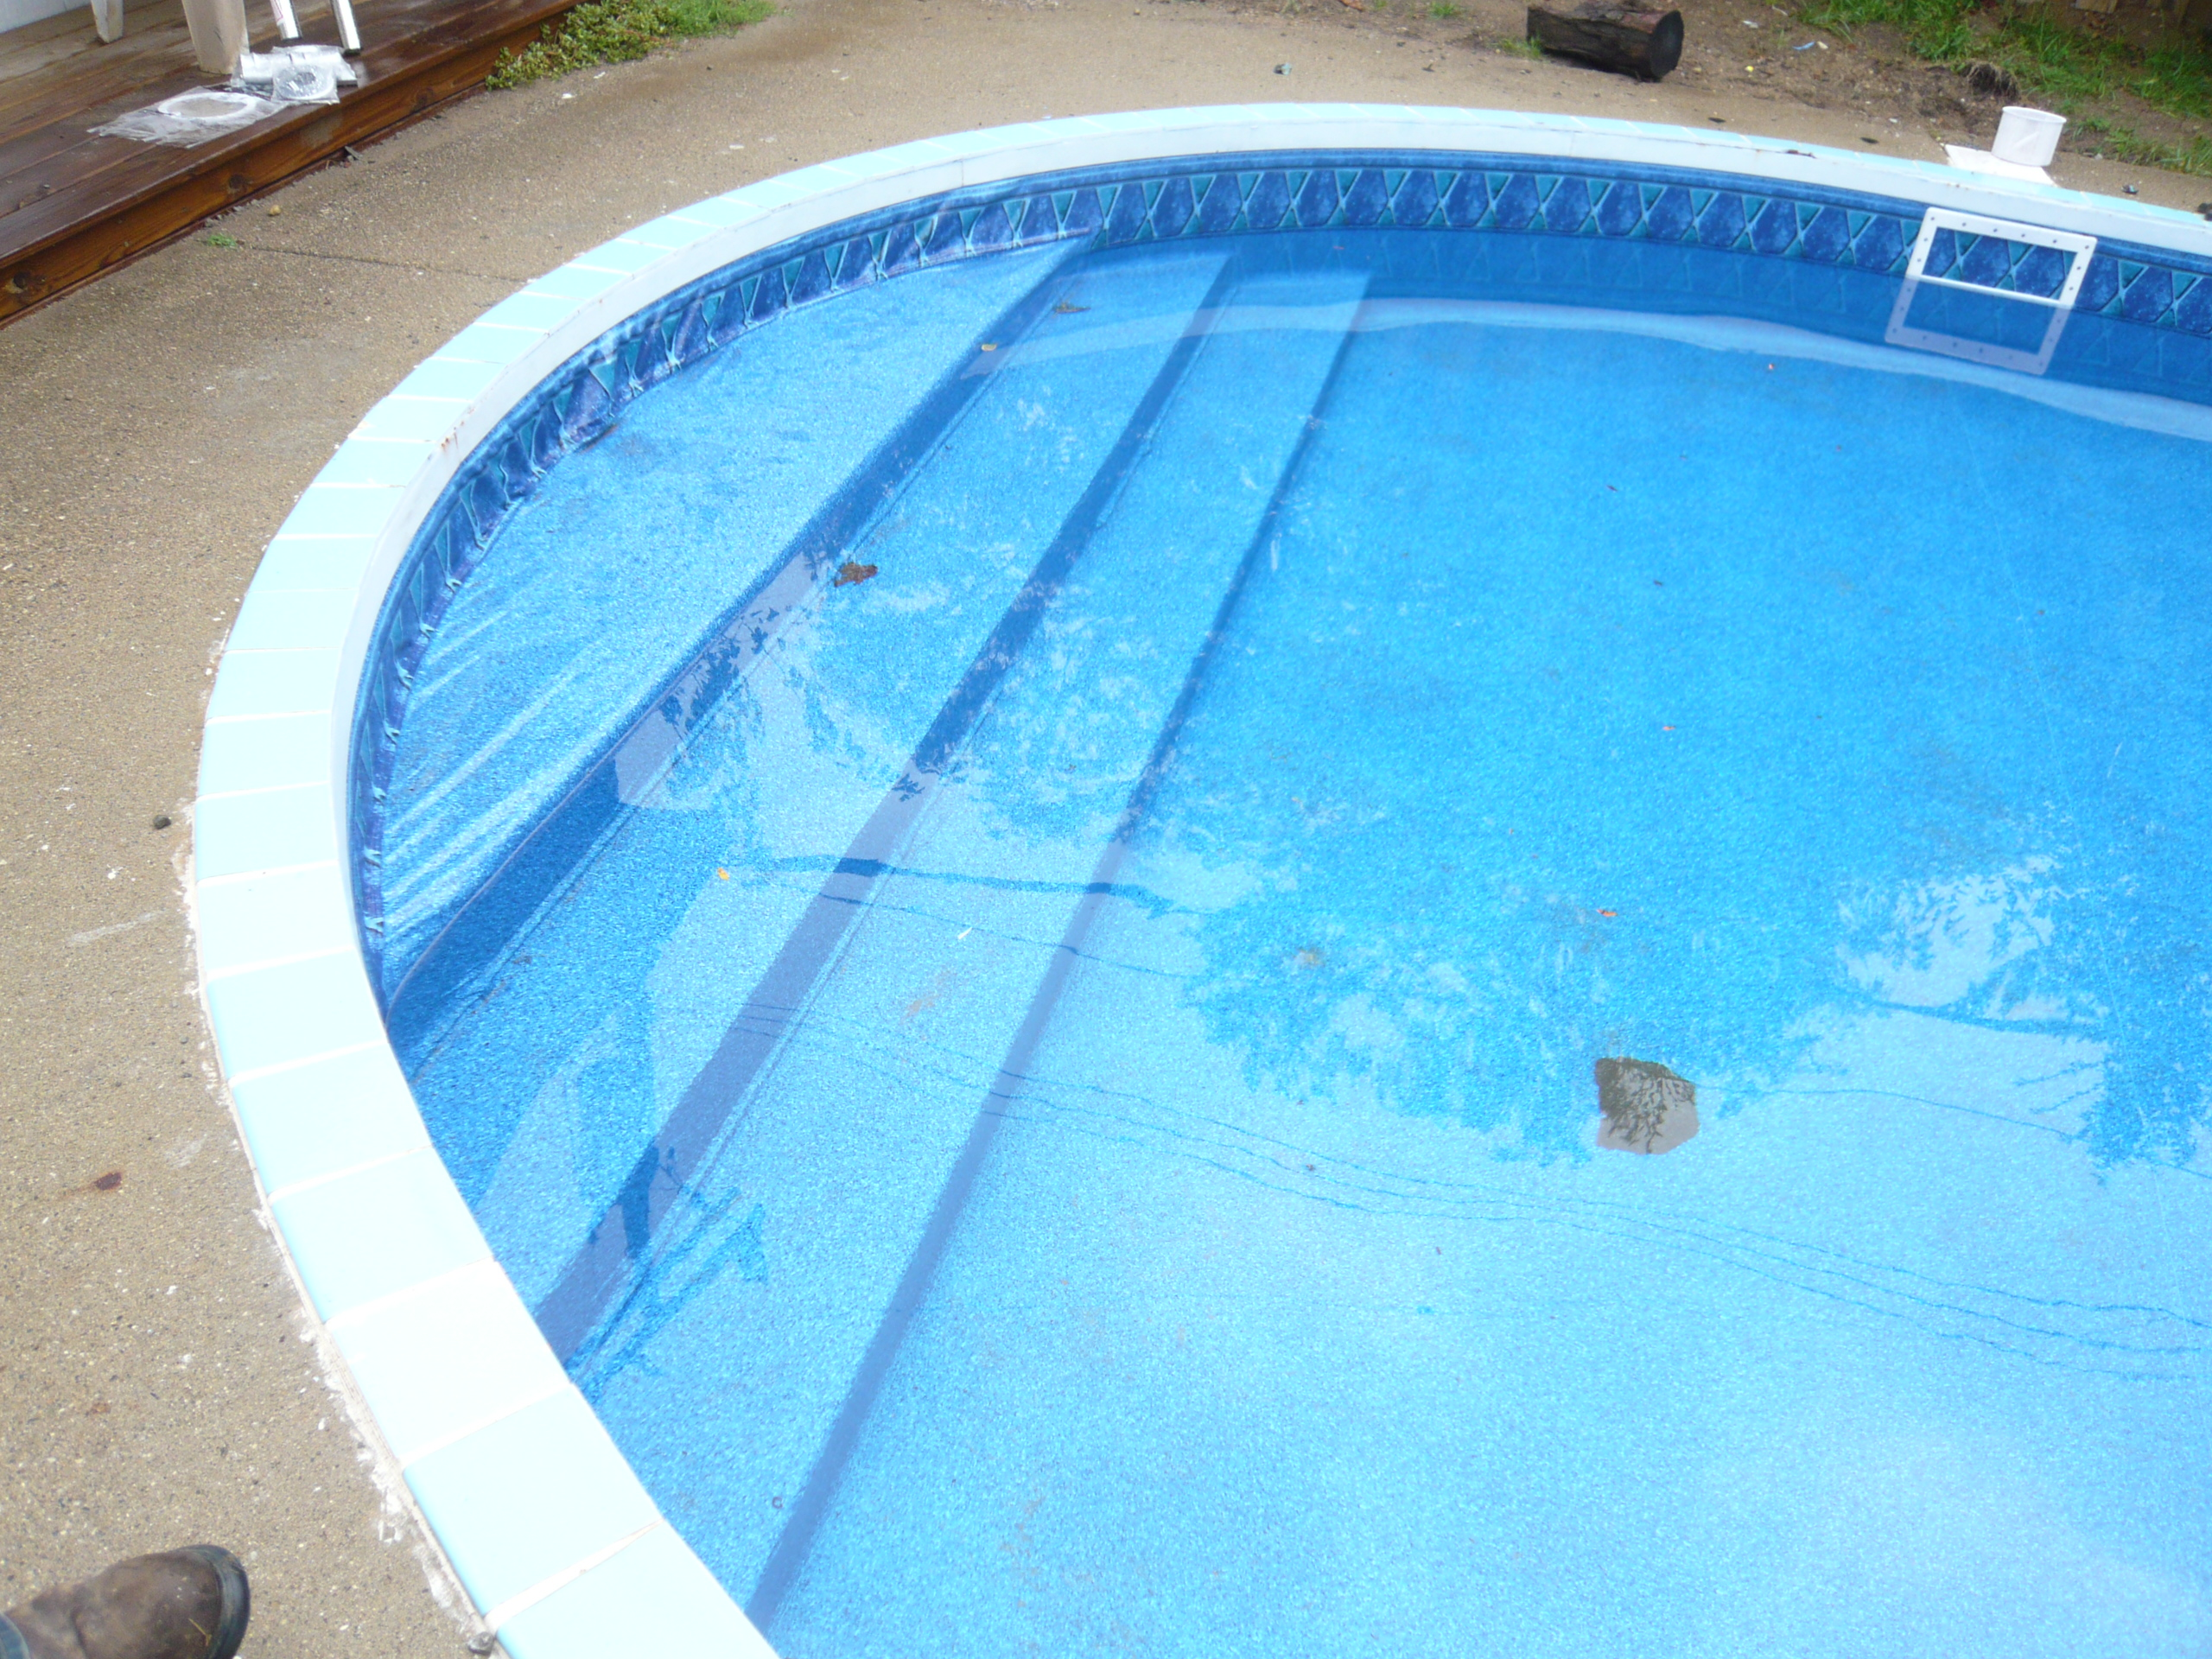 Liner job 2011 done by pietila pools services for Swimming pool design jobs